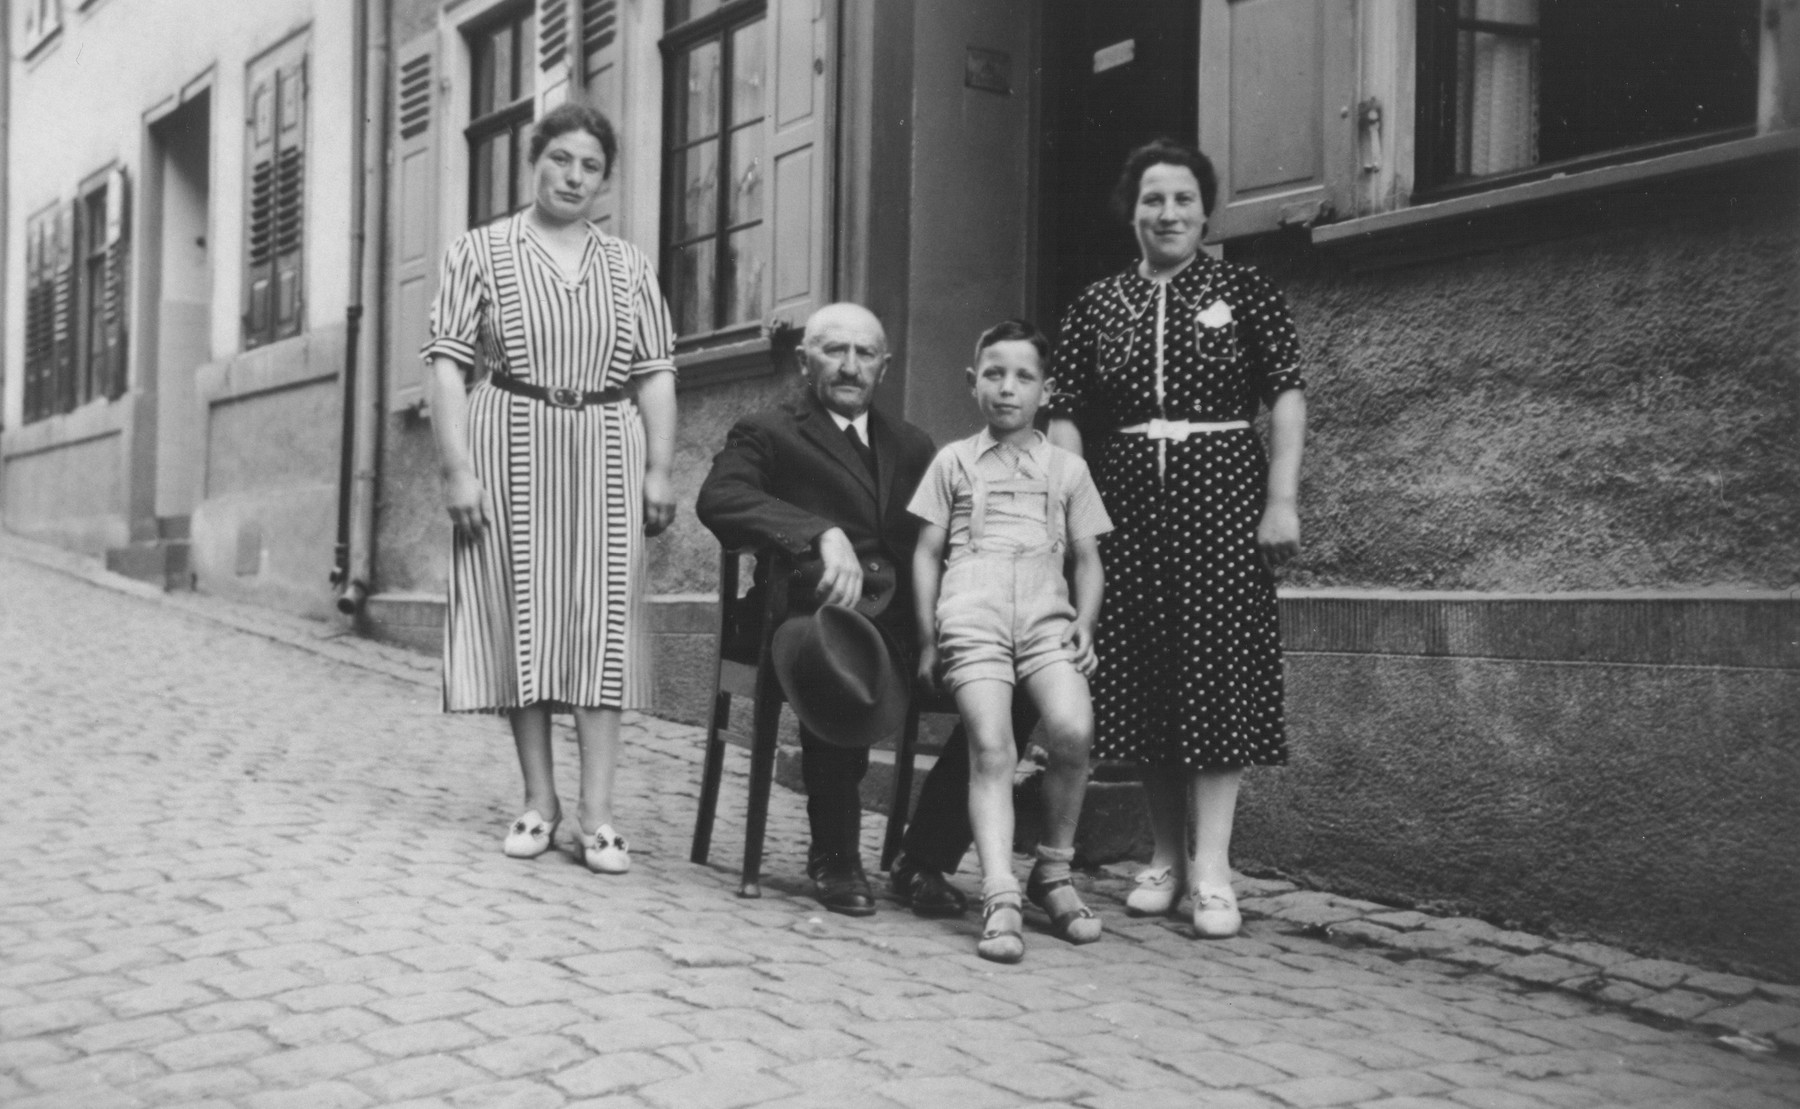 A German-Jewish family poses outside their home in Oberwesel.  Among those pictured are Else Trum (sister of Erna Gottschalk), Gustav Gerson, Alfred Gottschalk and Erna Gottschalk.